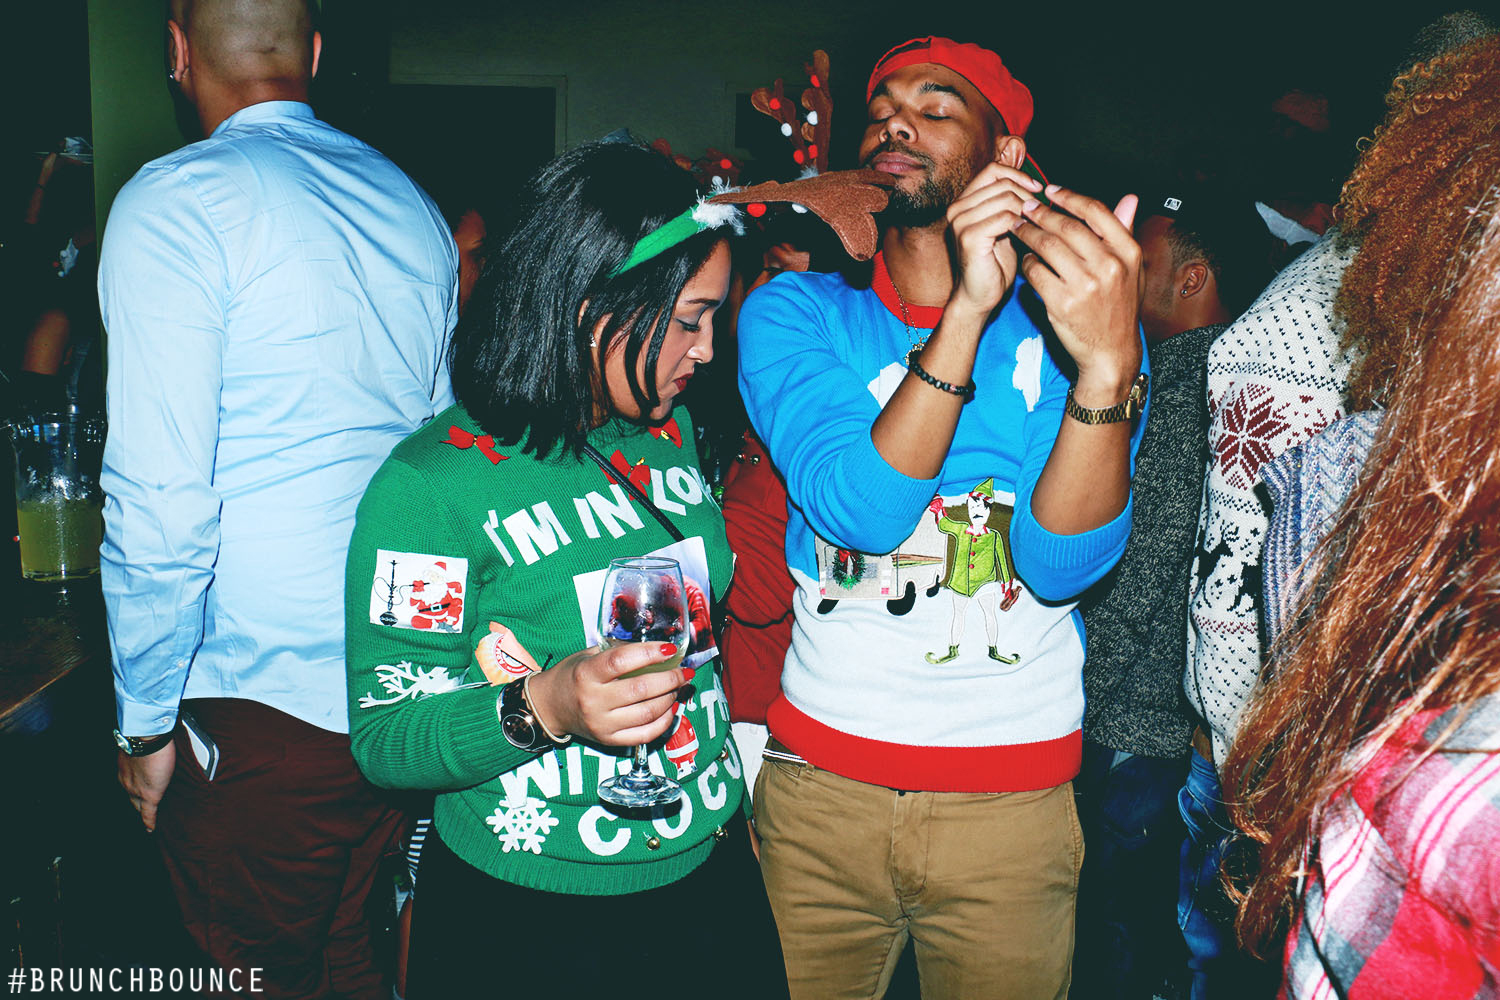 brunchbounce-ugly-christmas-sweater-party-122014_15460426214_o.jpg